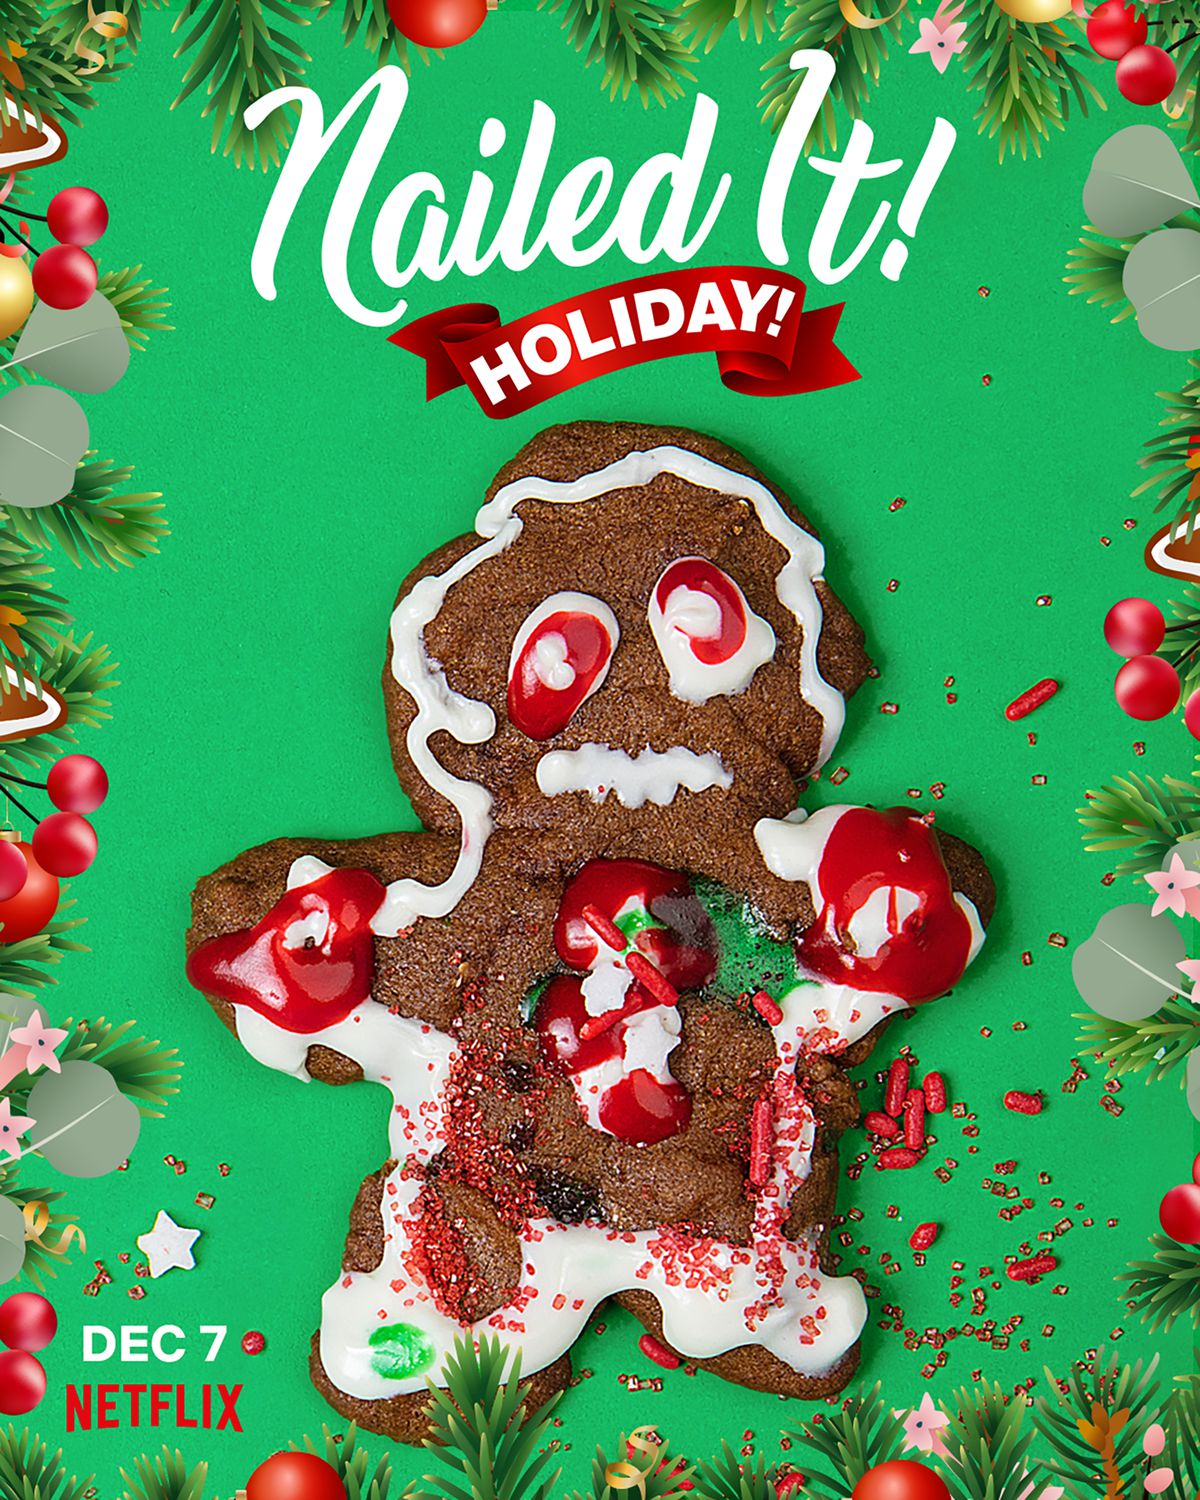 Nailed It! New Trailer: Watch the Latest Trailer for the Holiday ...